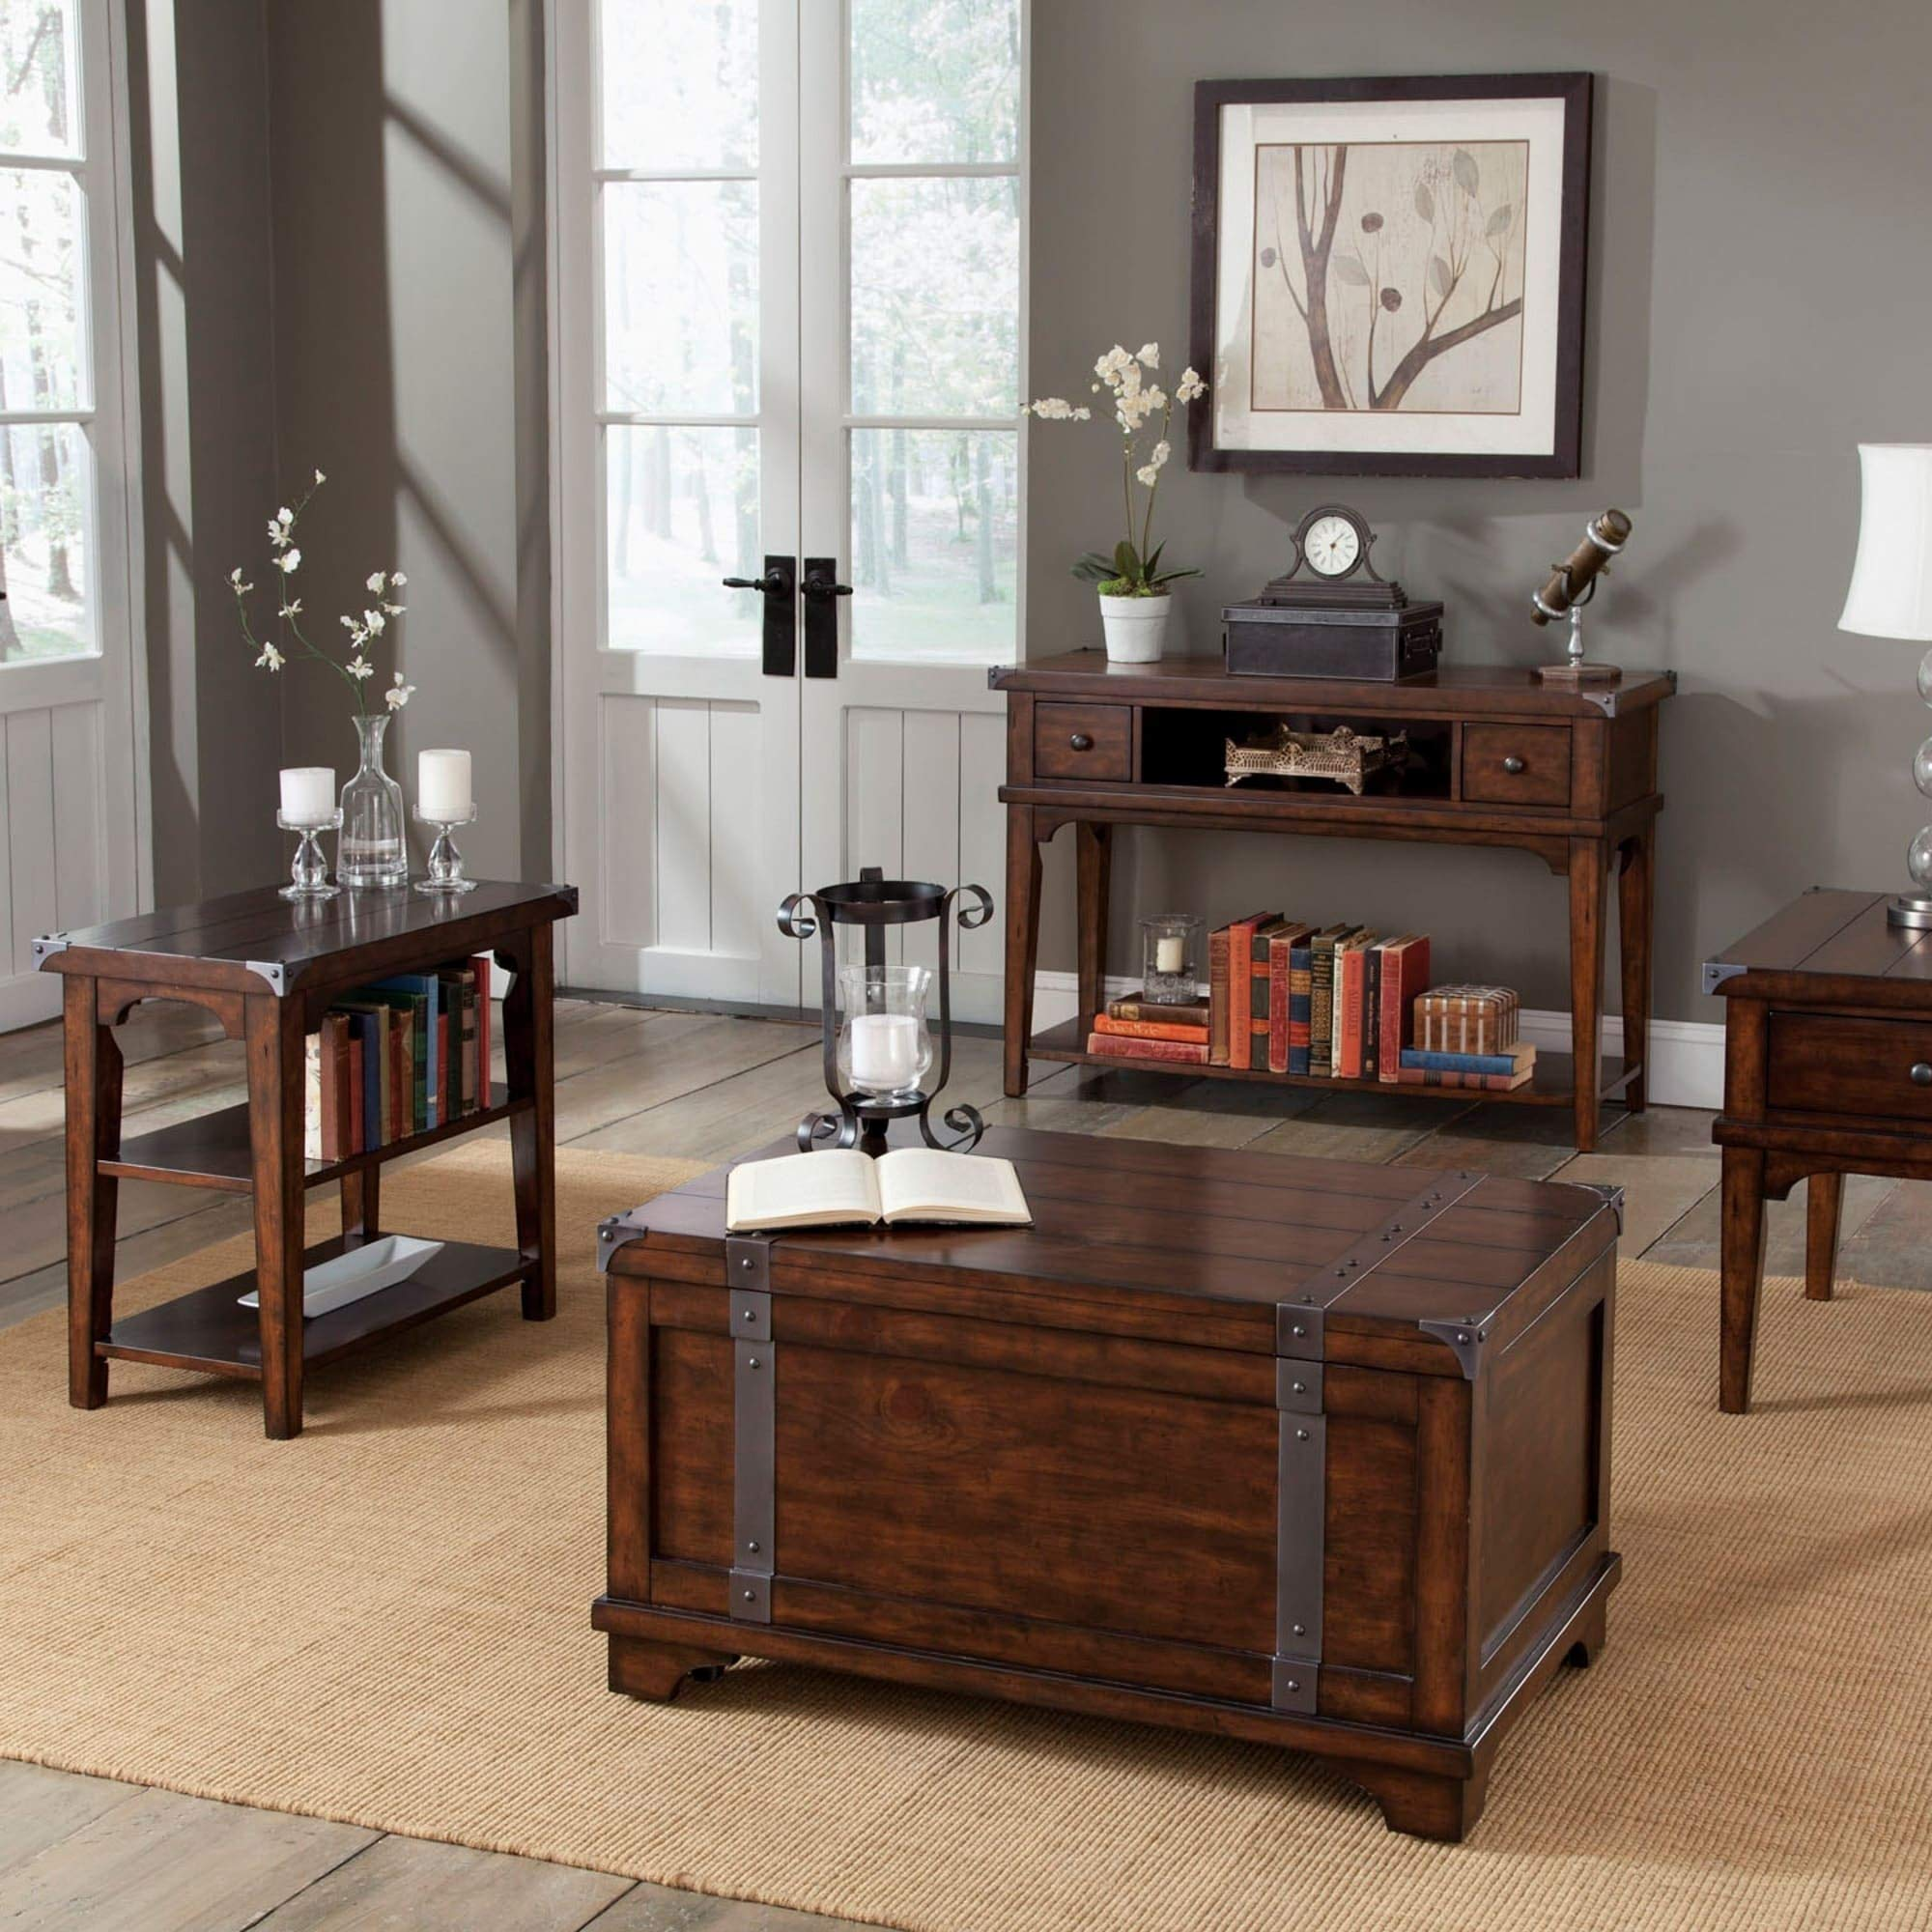 Aspen Skies Russet Brown and Metal Accents Storage Trunk Rustic Traditional Transitional Vintage Rectangle Pine Veneer Wood Finish Casters Hidden by Unknown